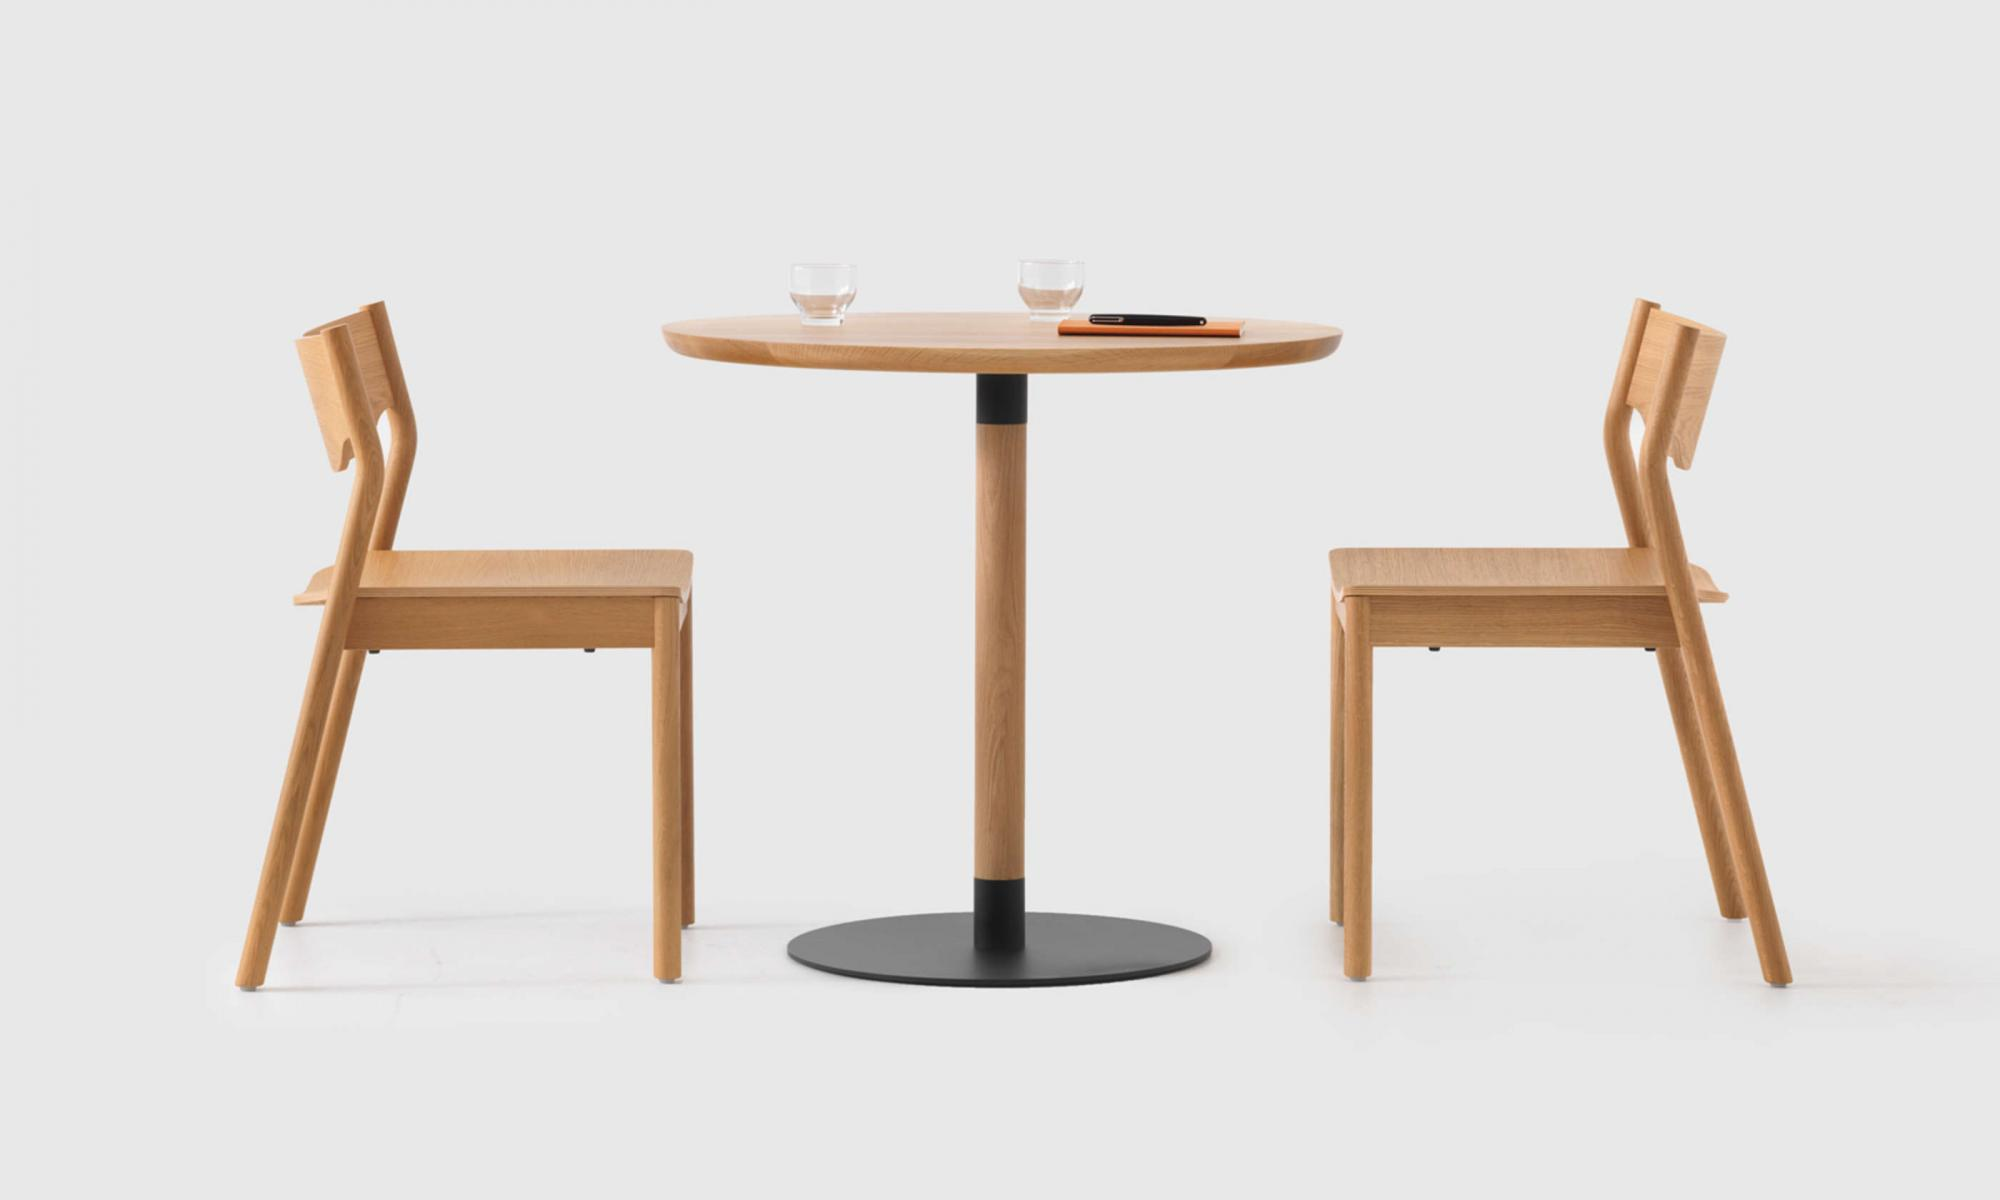 Underline Café Table from District